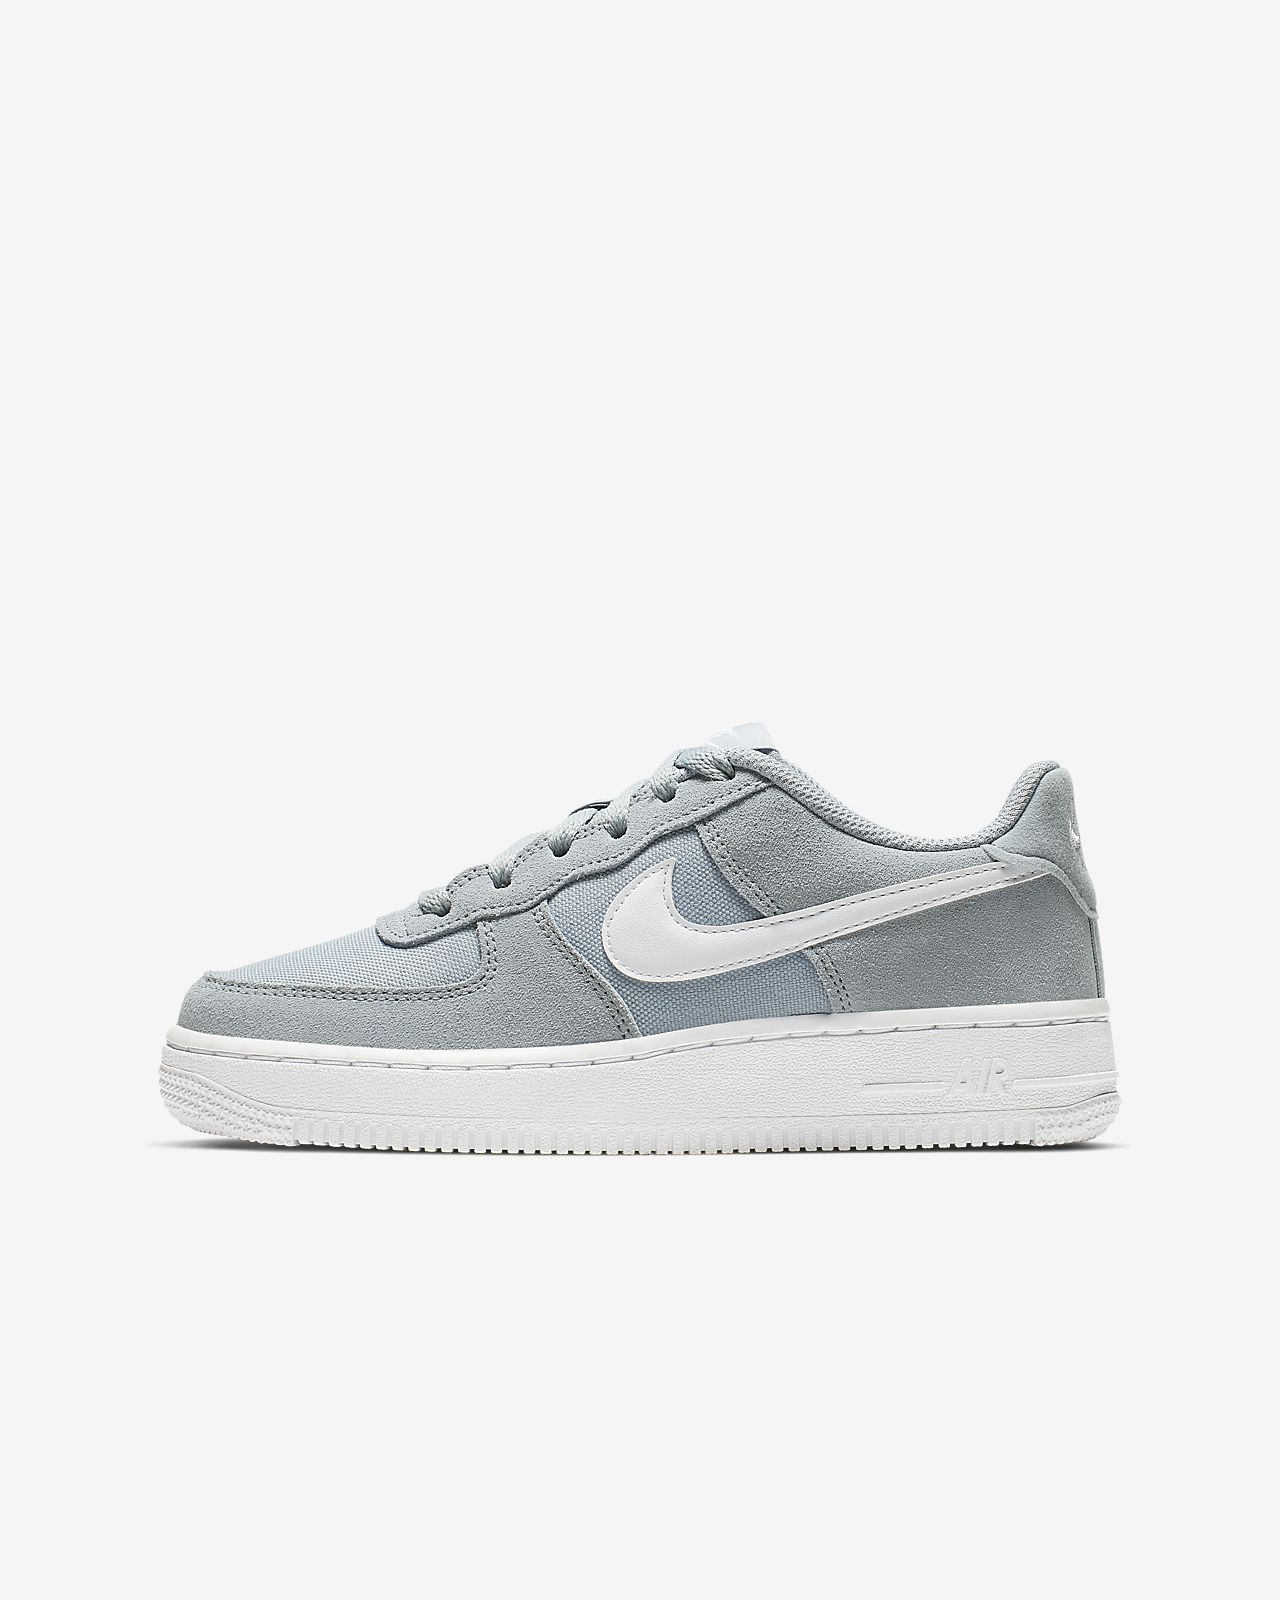 Nike Air Force 1 PE Sabatilles - Nen/a